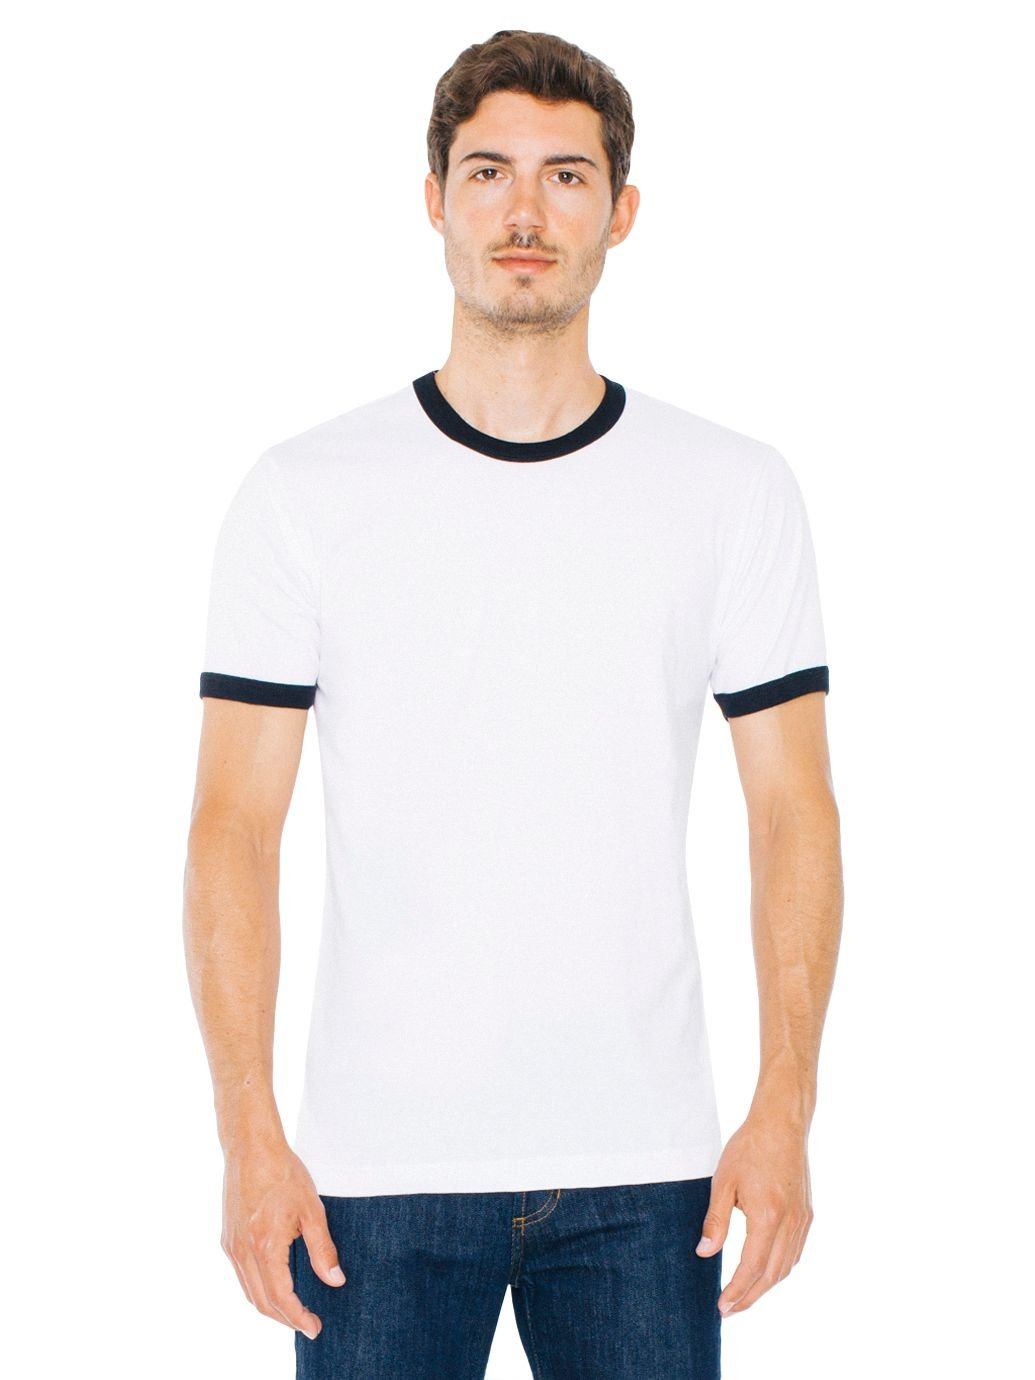 American Apparel Men Fine Jersey Short Sleeve Ringer T-Shirt Size 2XL White /